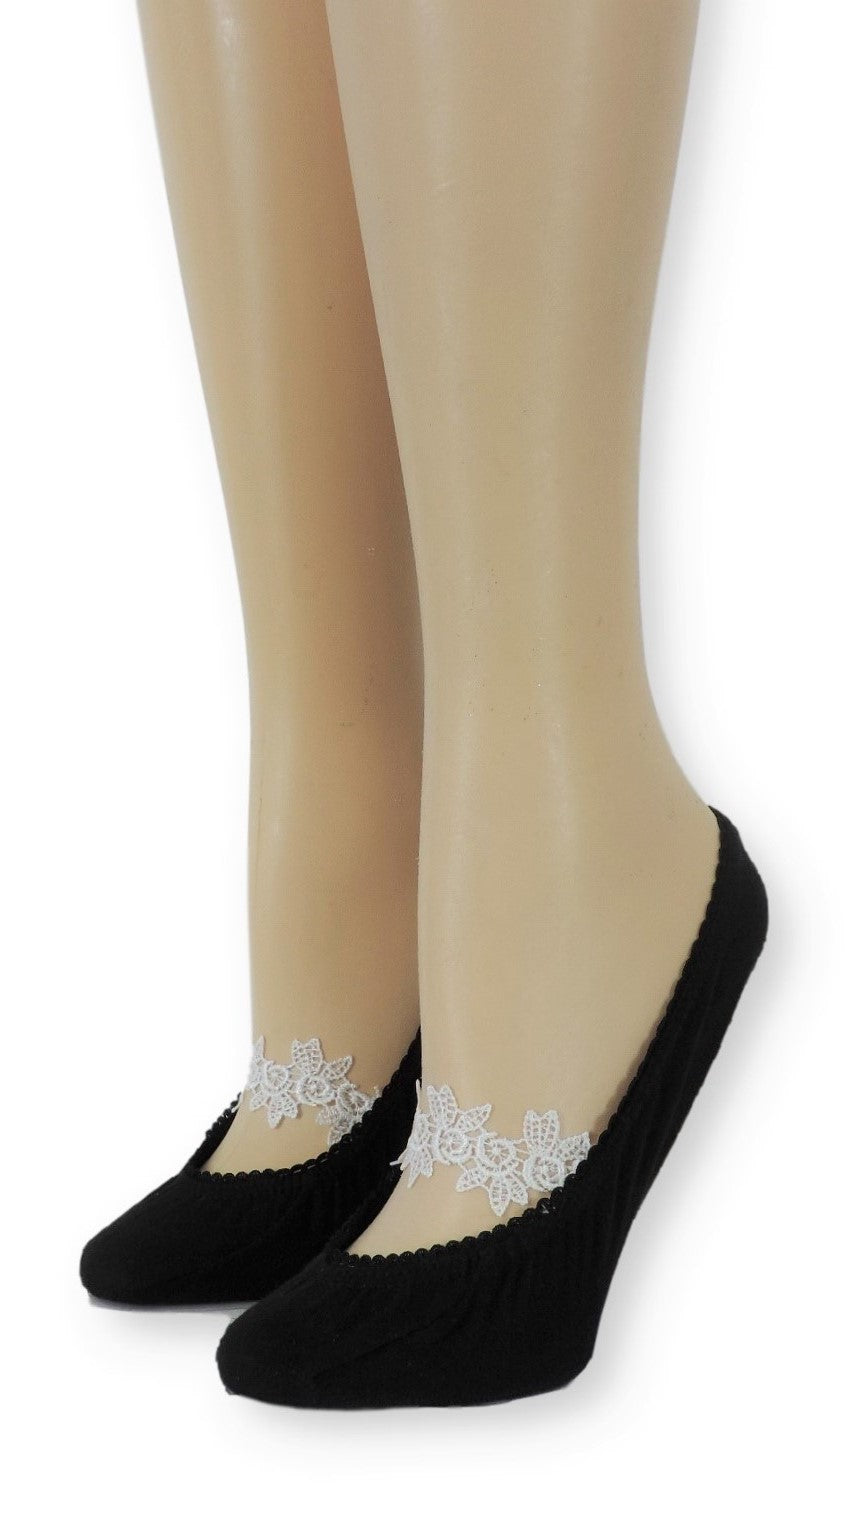 Ankle Socks with White Flower Lace